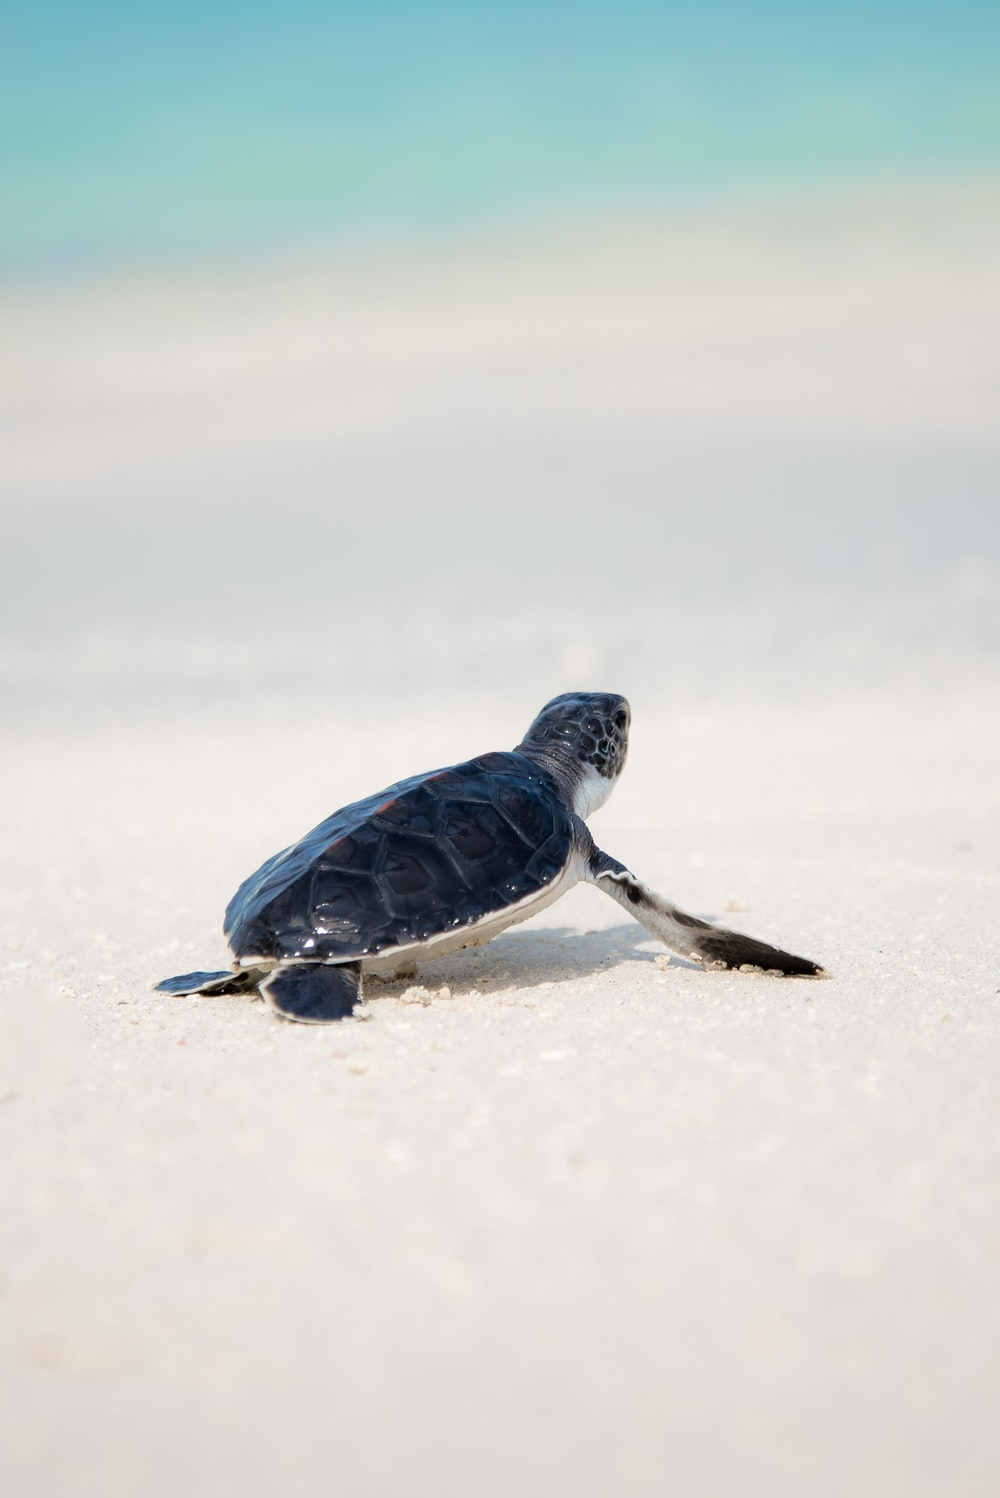 black turtle on sand